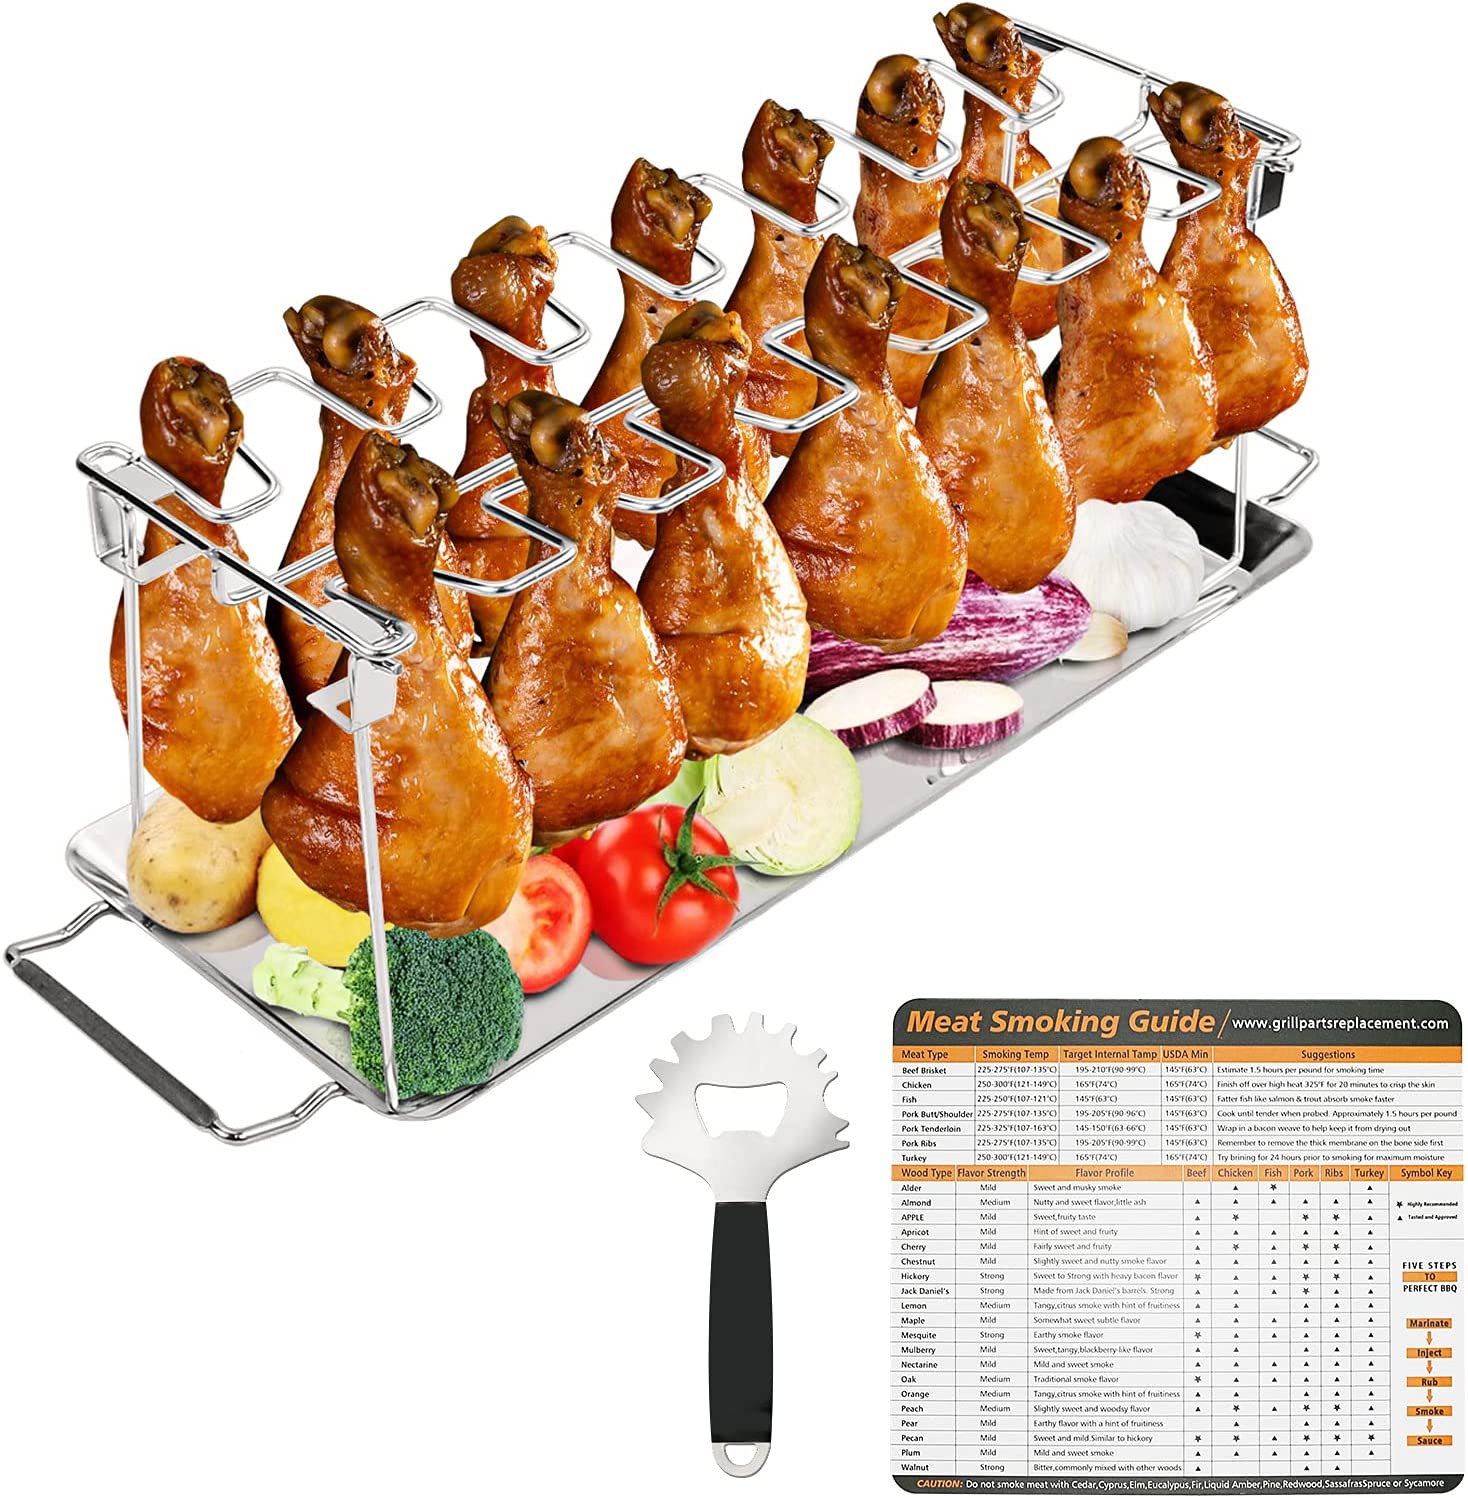 GRISUN Chicken Leg Wing Rack, 14 Slots Roaster Stand Chicken Leg Holder Stainless Steel Drip Pan with Grill Scraper Tool and Magnetic Meat Smoking Guide Smoker Accessories for Grill or Oven